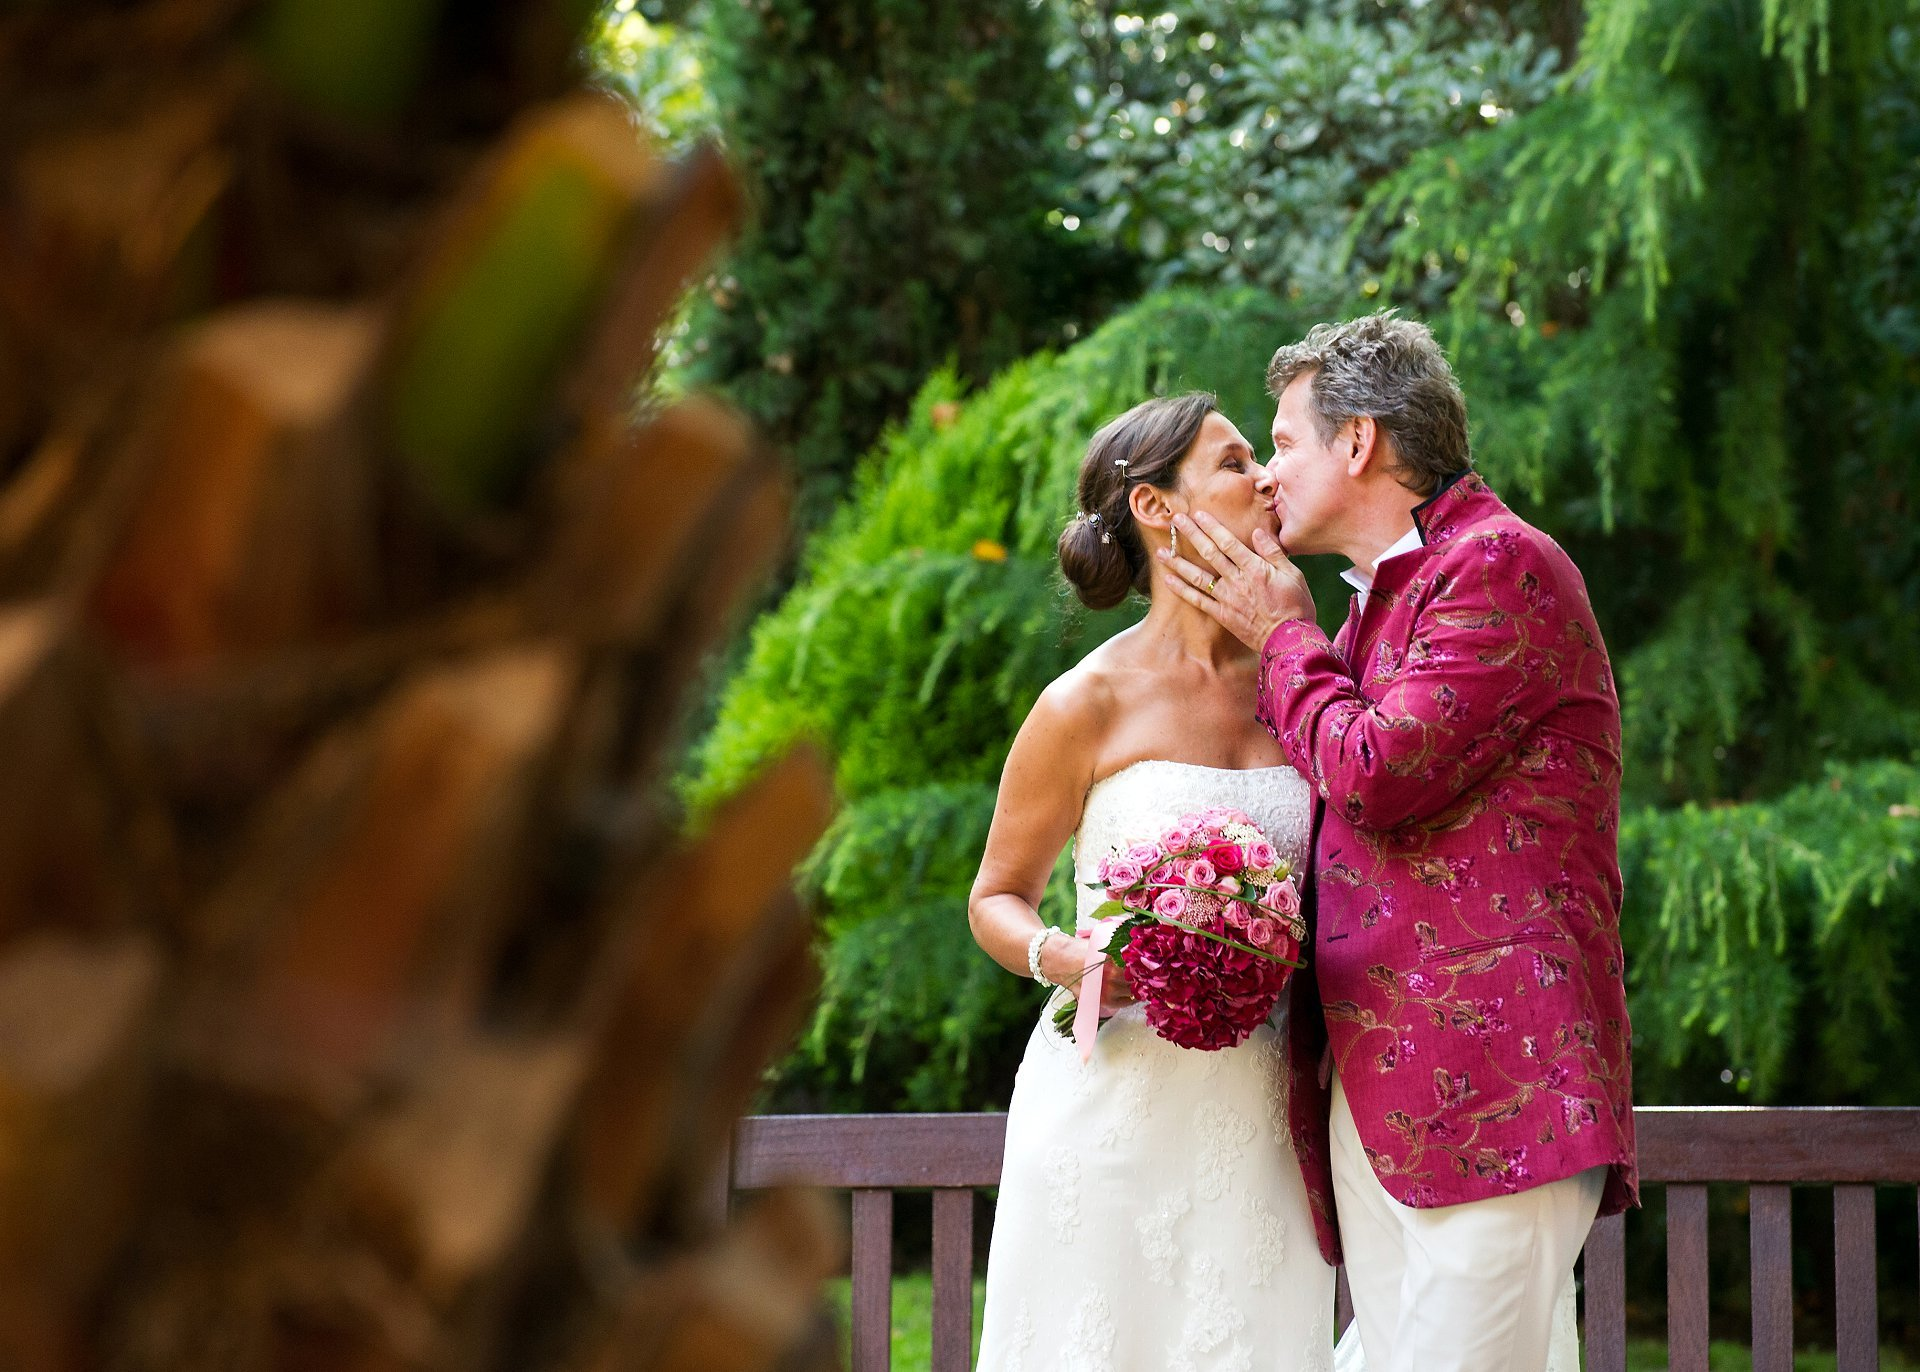 A French bride and groom kissing in Mount Street Gardens after their Westminster wedding